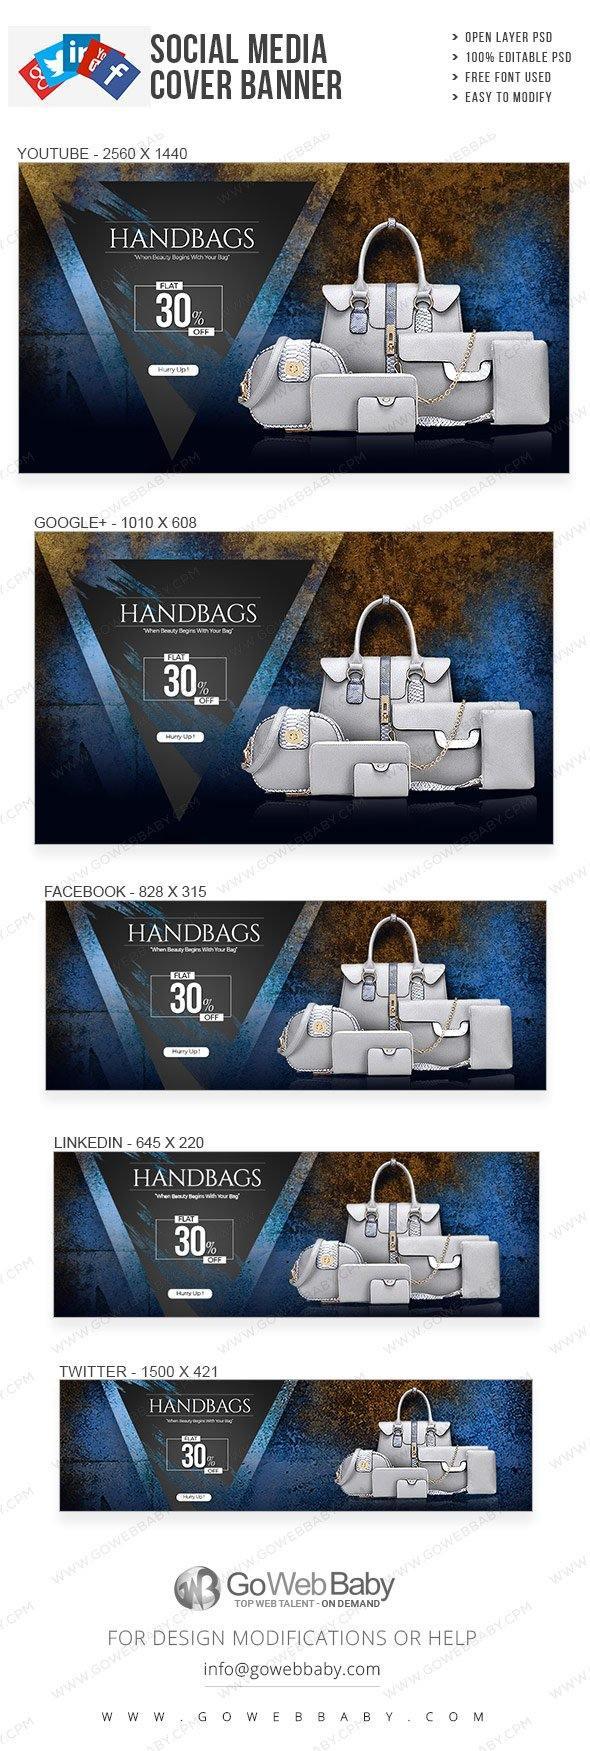 Social Media Cover Banner - Fashion Handbag Catalogue For Website Marketing - GoWebBaby.Com